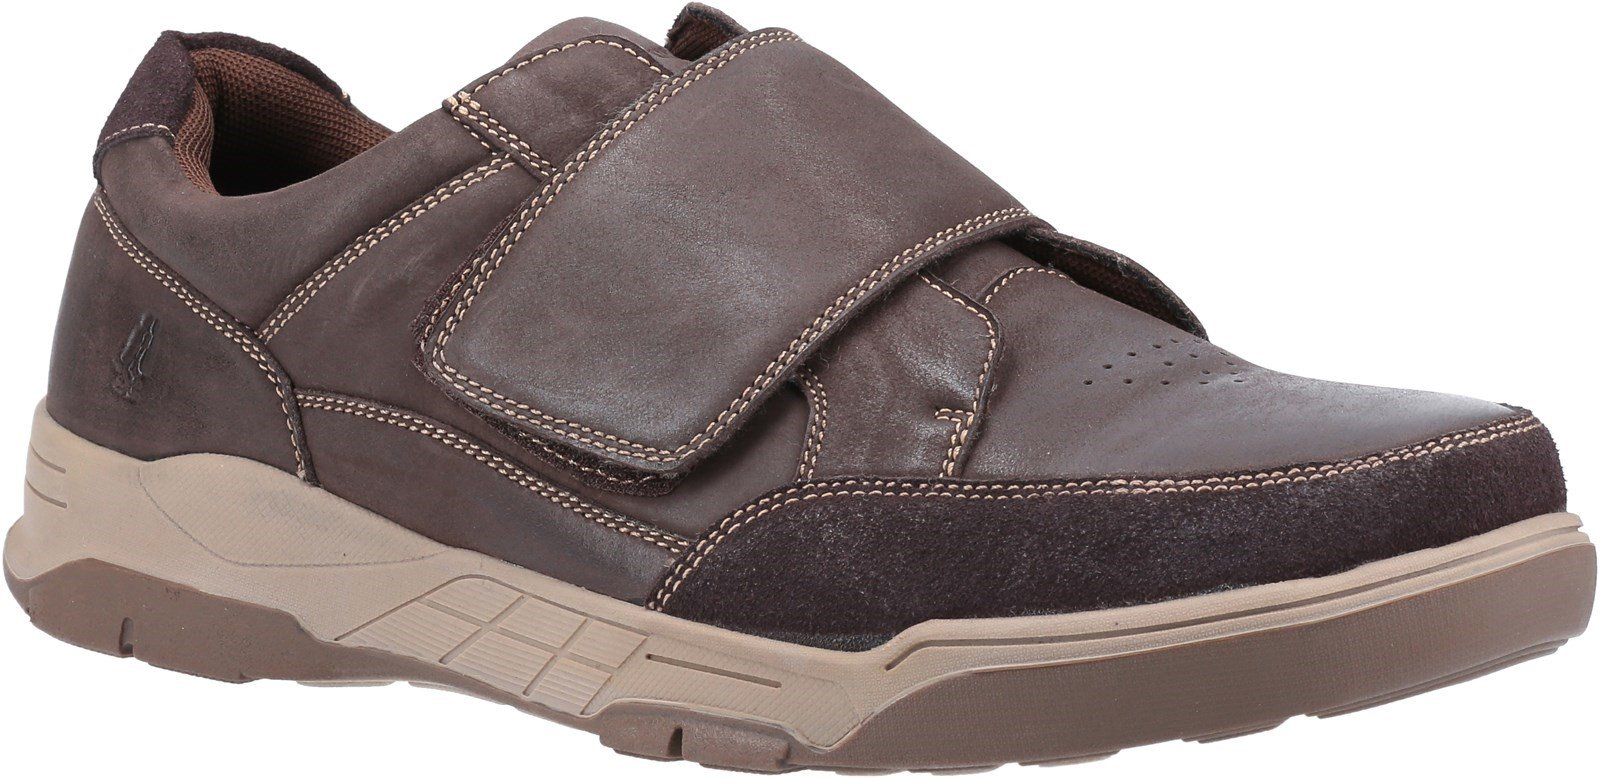 Hush Puppies Men's Fabian Touch Trainer Various Colours 32006 - Coffee 7